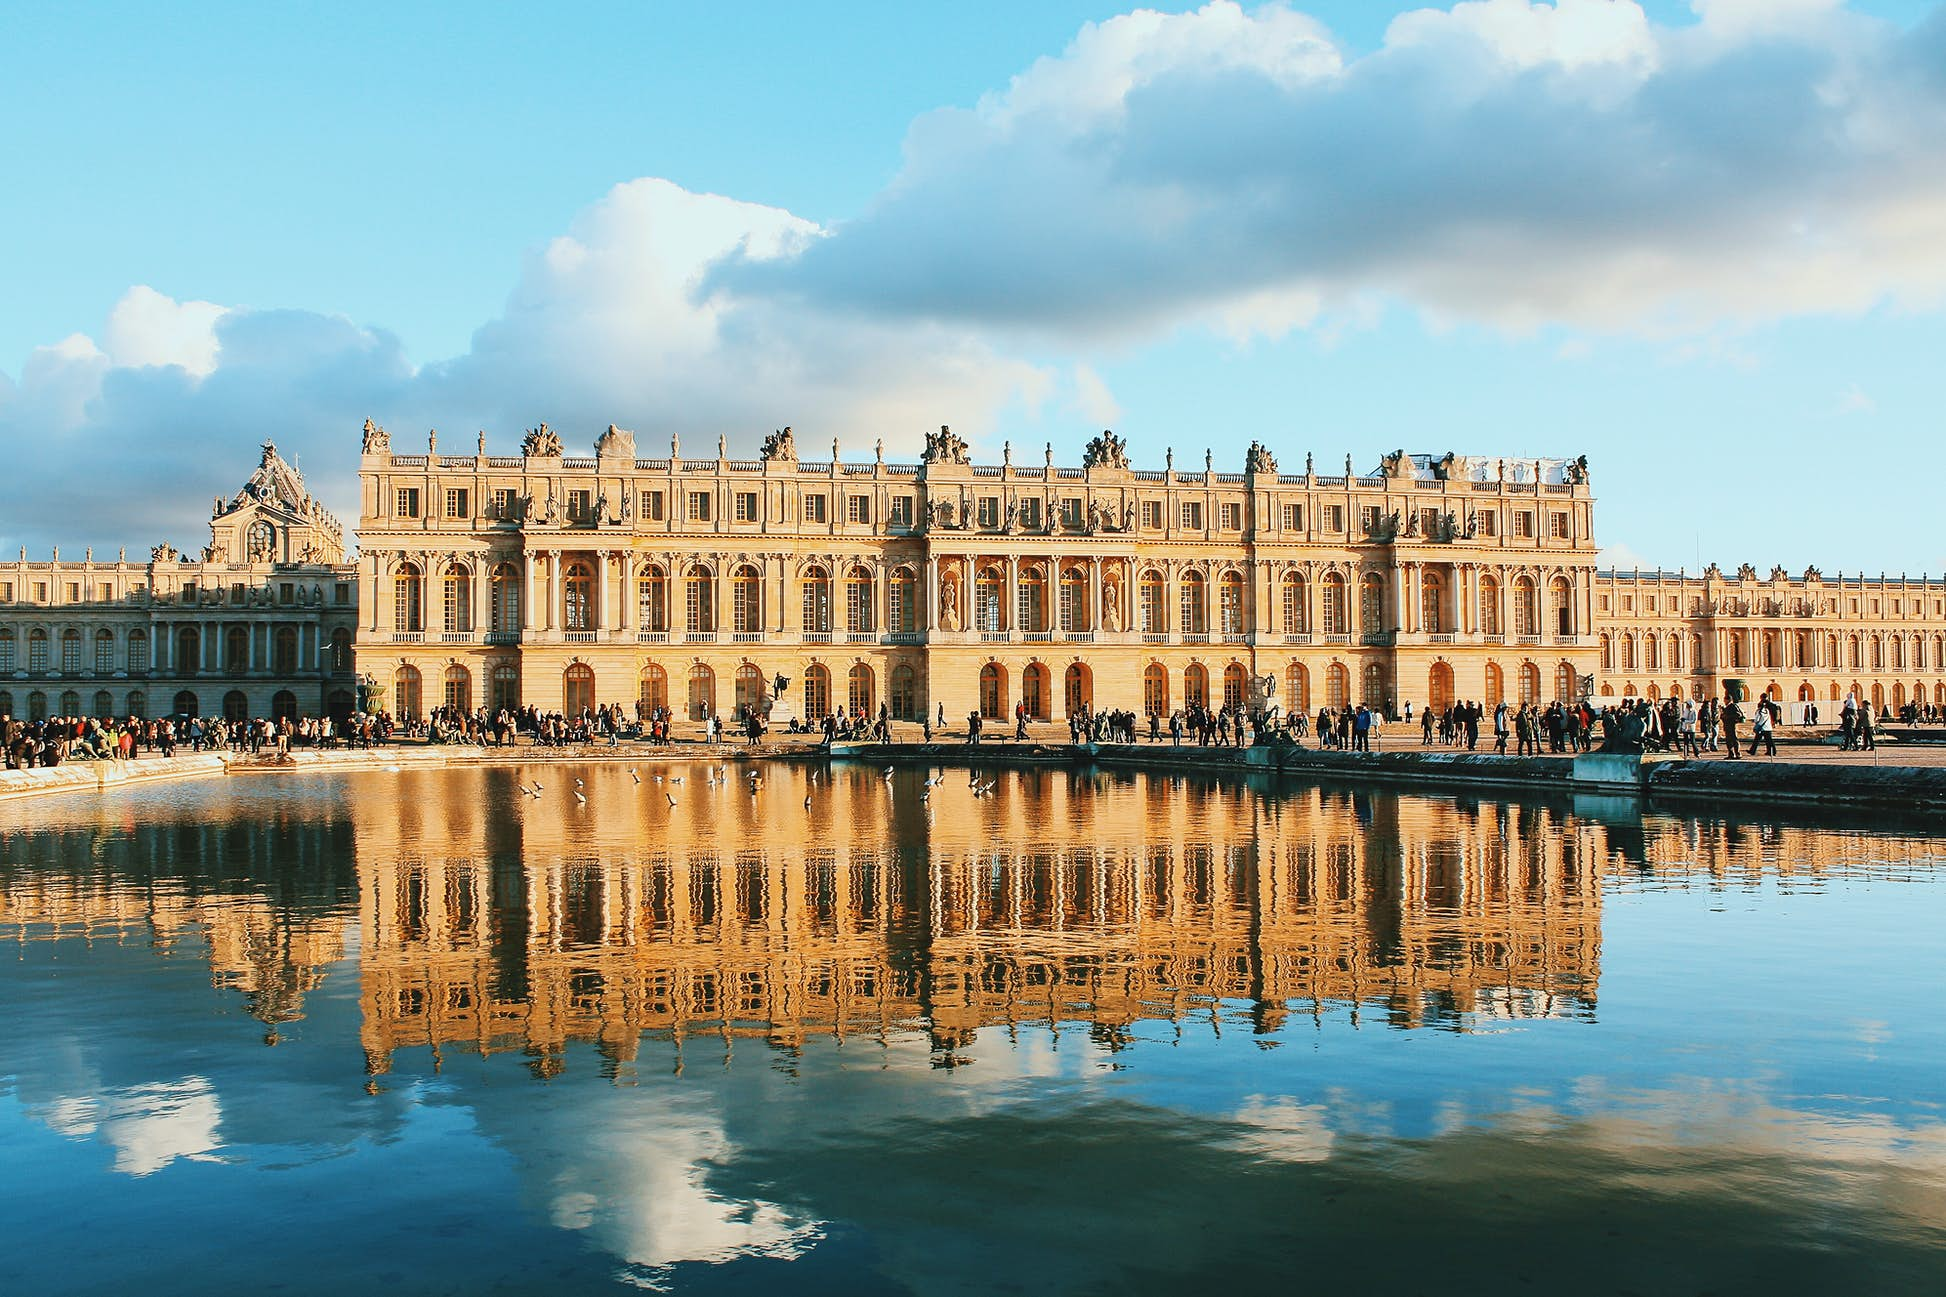 The Palace of Versailles has reopened © Jimena Contreras/500px